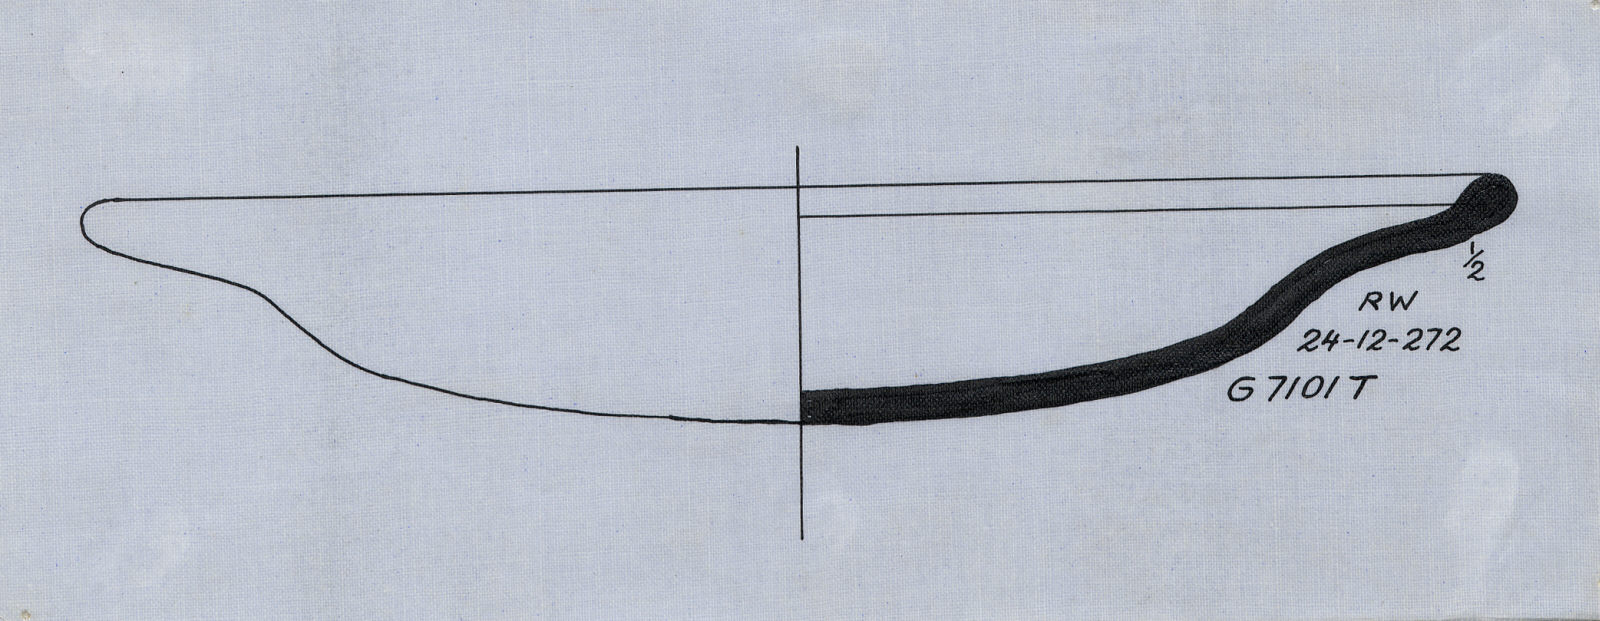 Drawings: G 7101, Shaft T: pottery, dish